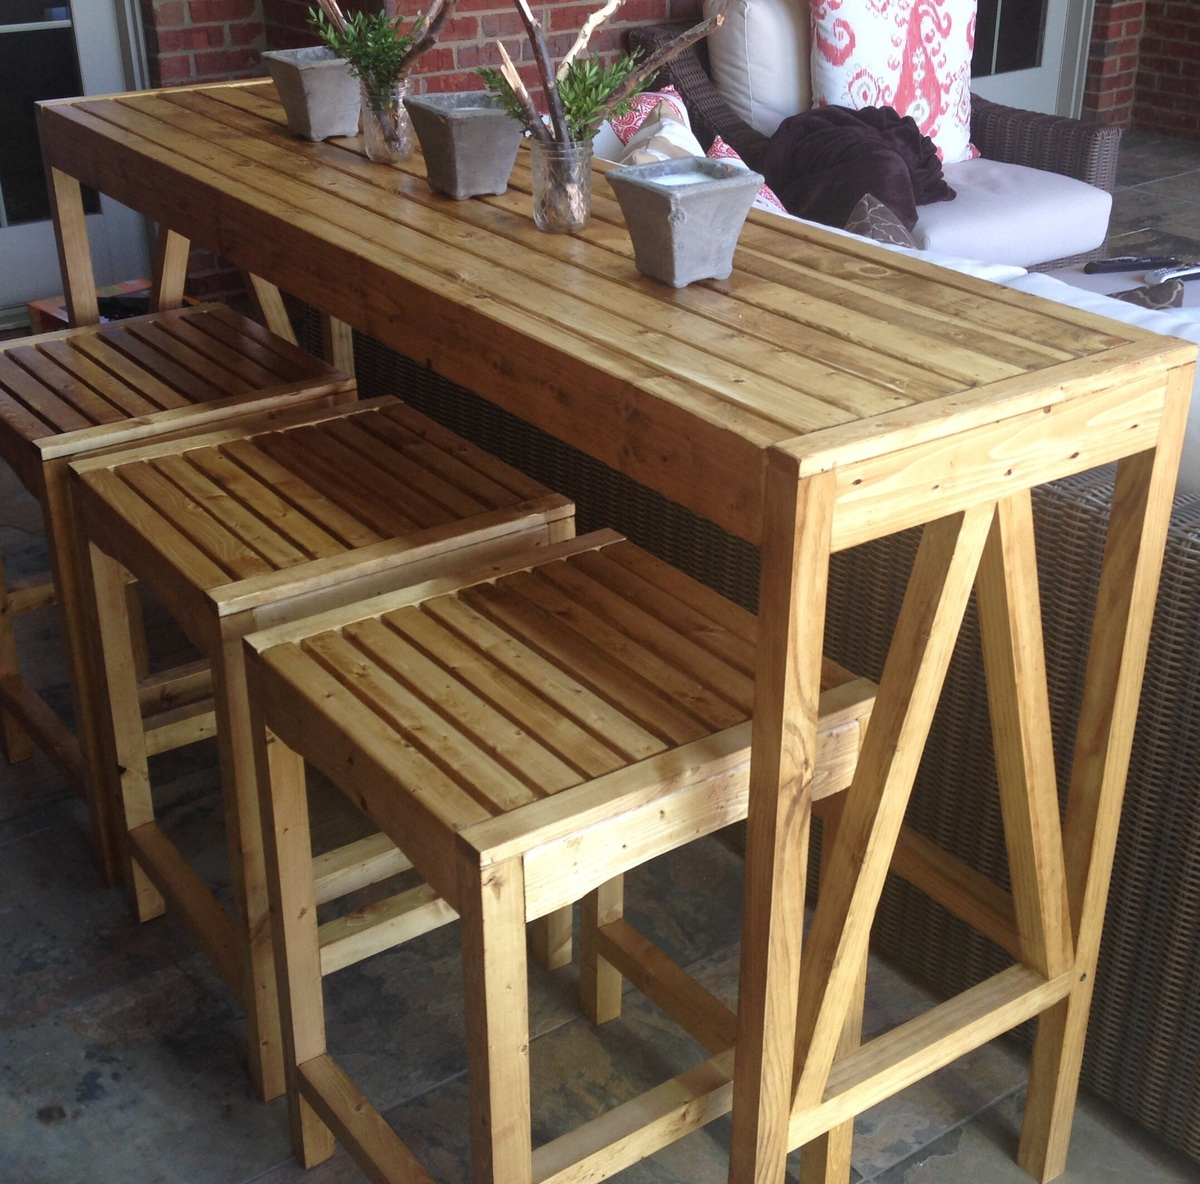 Ana white sutton custom outdoor bar stools diy projects for Diy wood bar